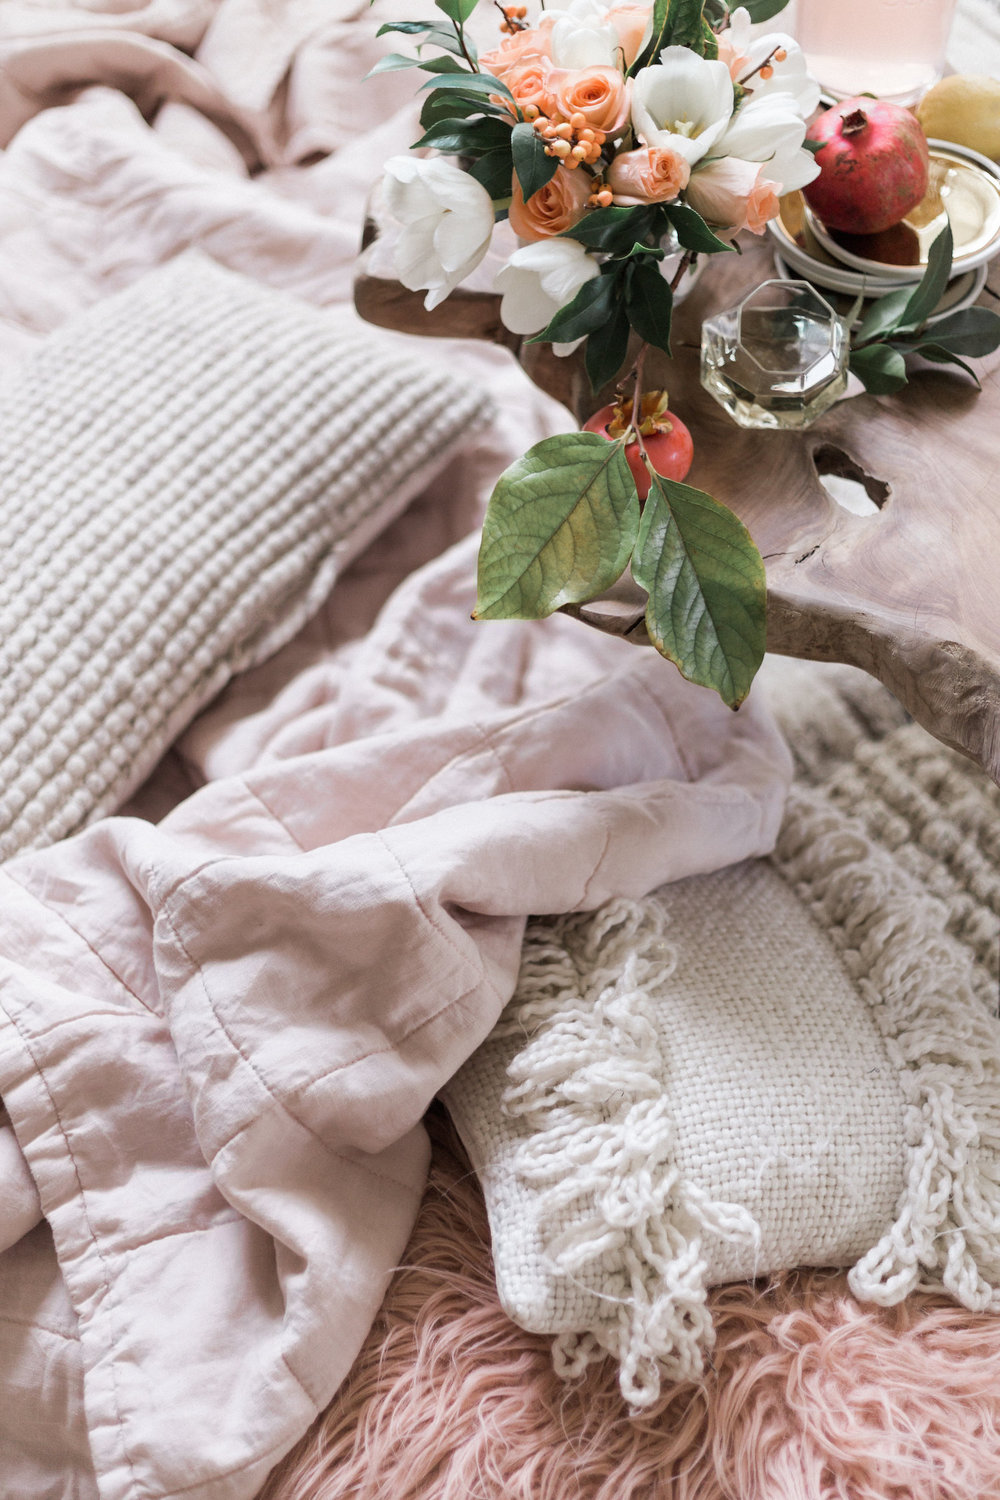 Piles of pillows and blankets for getting together around the coffee table | A Fabulous Fete